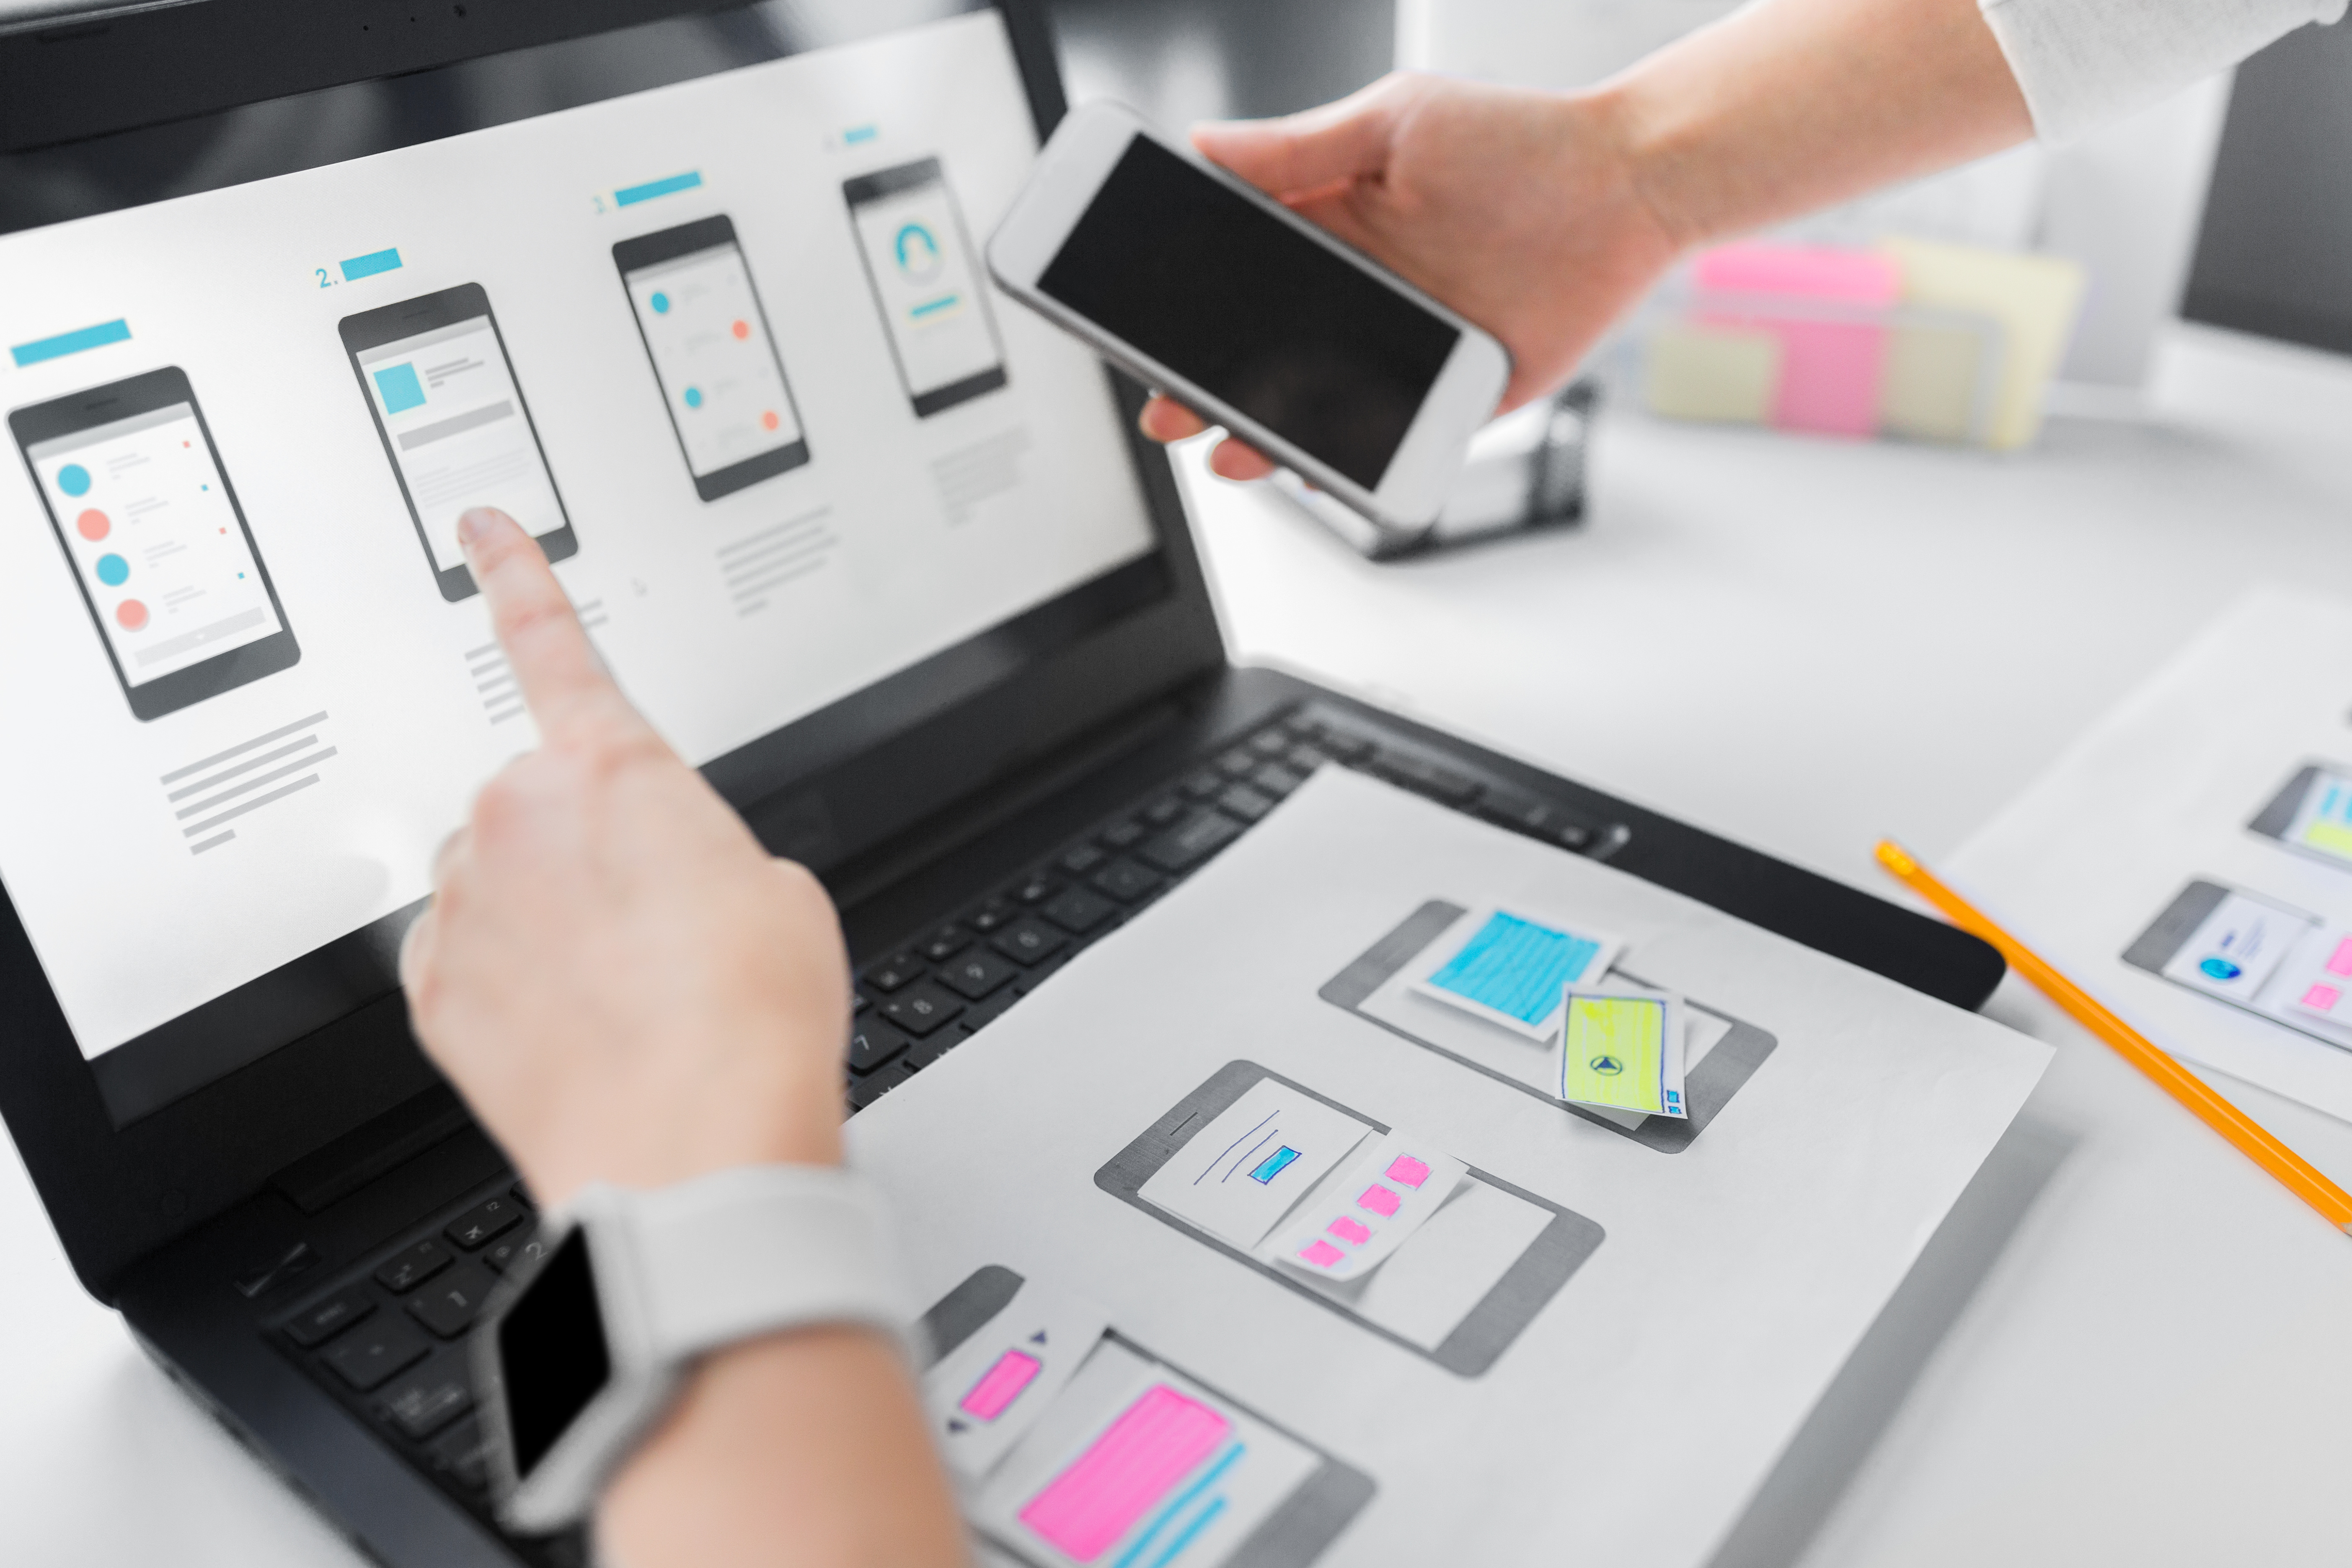 app design, technology and business concept - web designers or developers with laptop computer and smartphone working on user interface layout at office